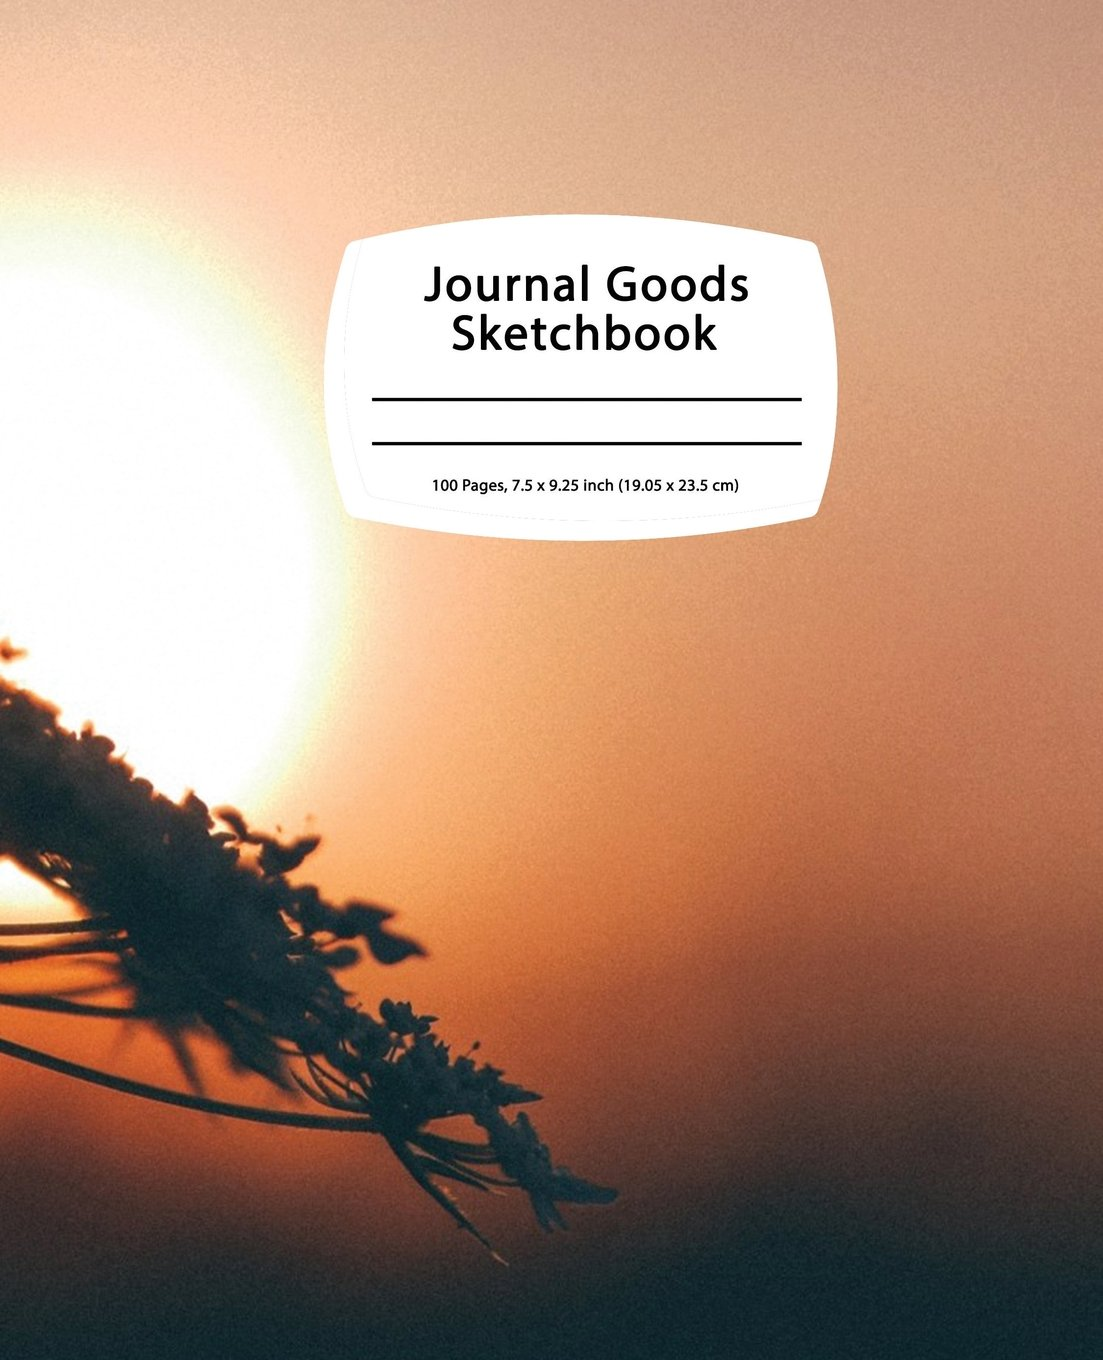 Journal Goods Sketchbook - Sun Flower: 7.5 x 9.25, Large Sketchbook Journal Drawing Book, 100 Pages For Sketching, Bullet Journal, Notes and More (Durable Cover) ebook